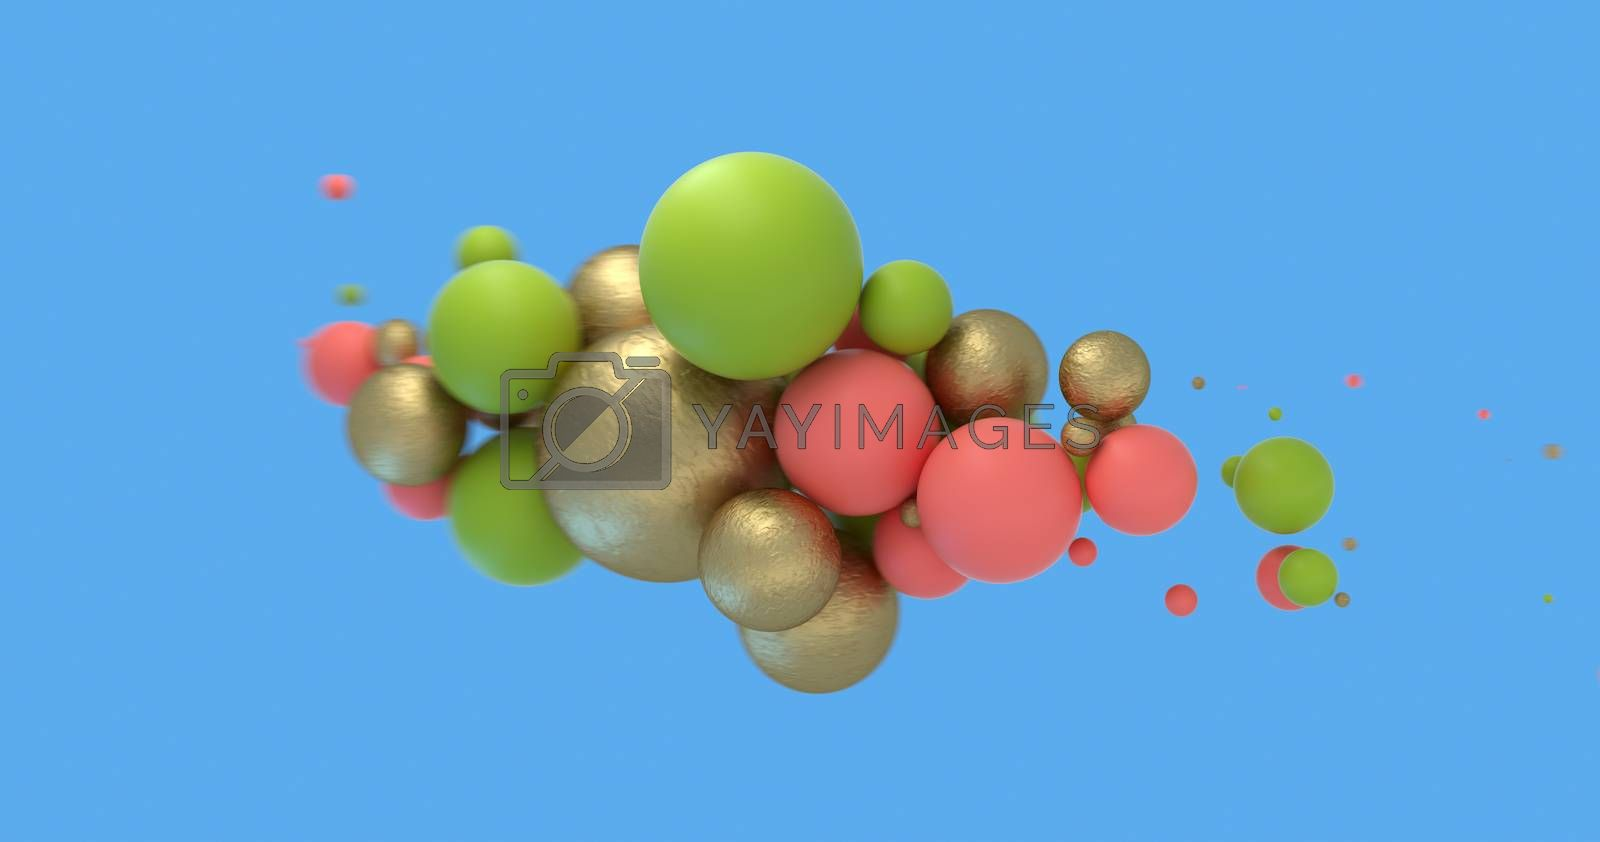 Abstract background with Living Coral, golden and green spheres on blue. Fashion sale banner design. 3D render